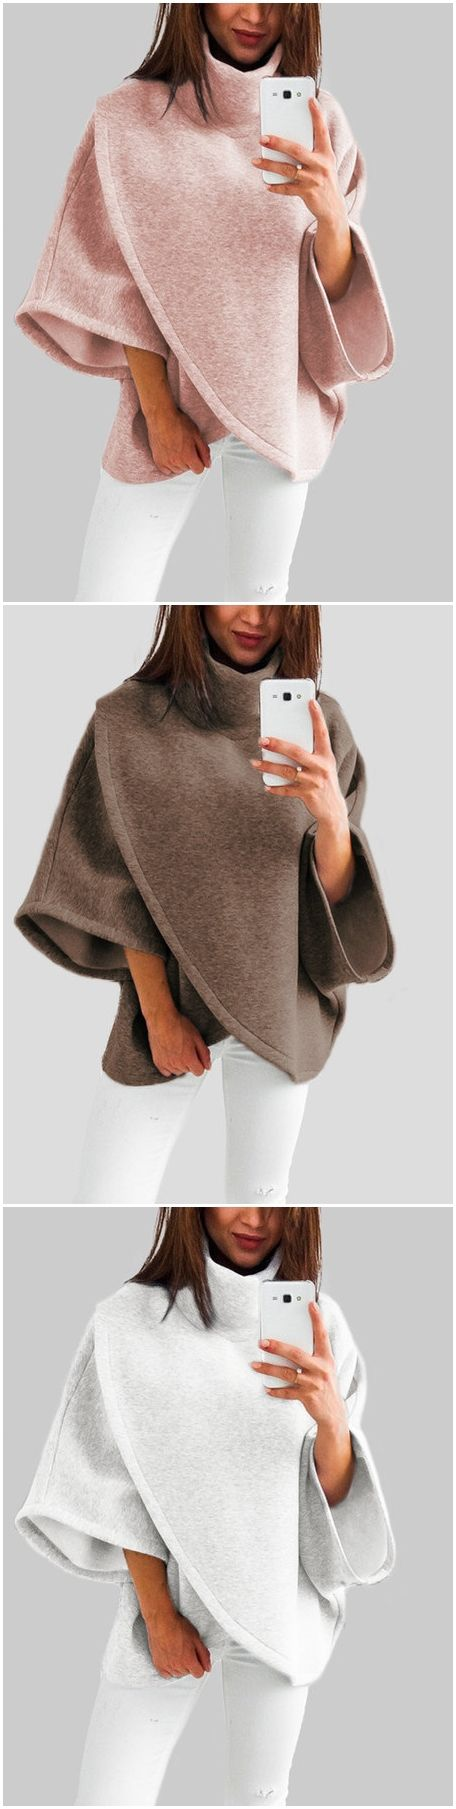 Chimney Collar Flared Sleeves Irregular Hem Sweater